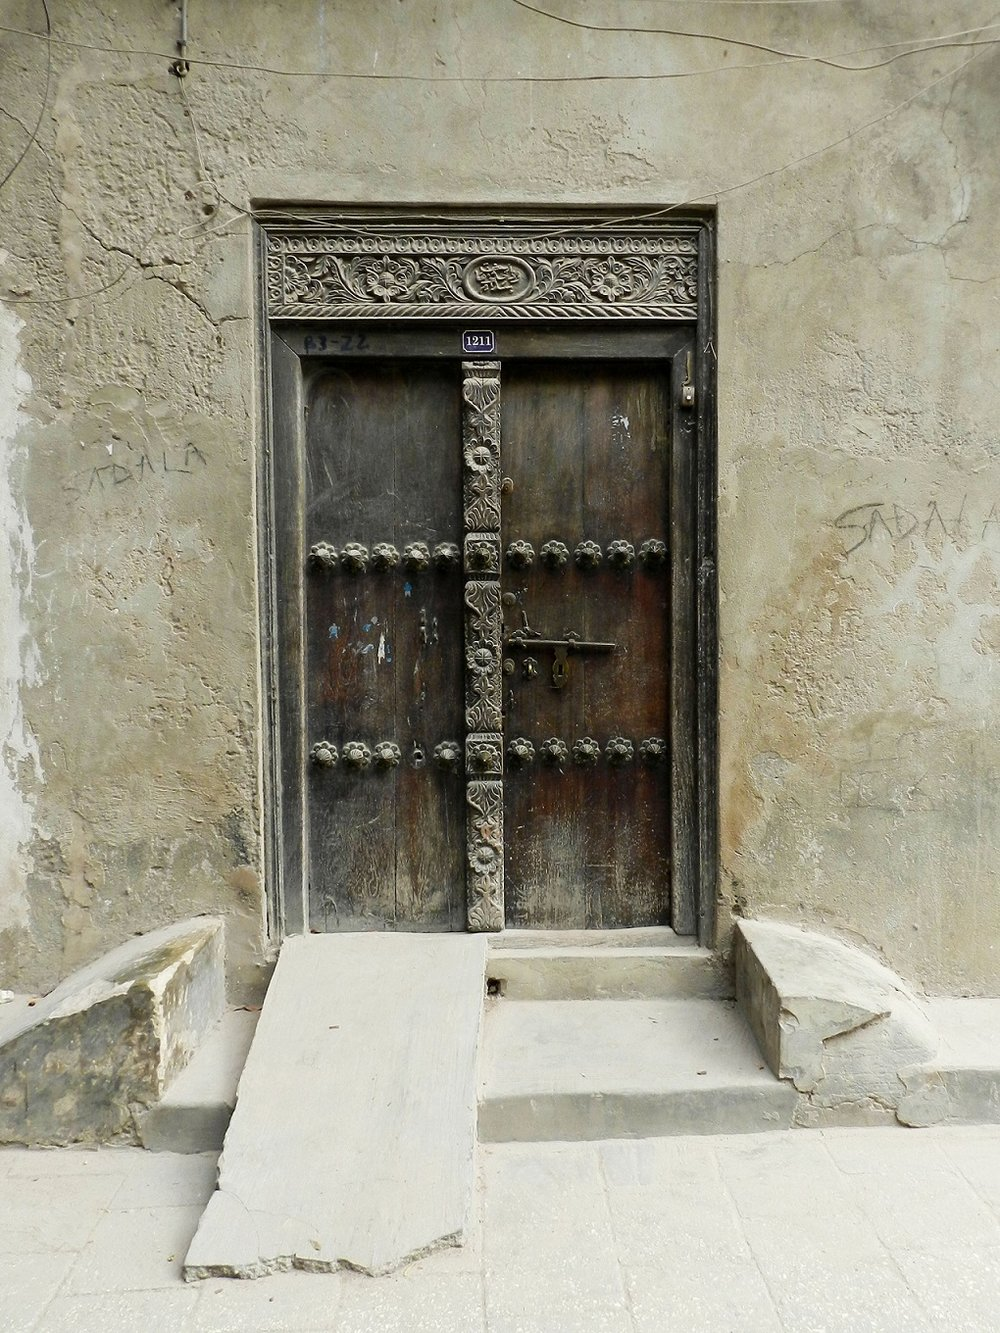 zanzibar_door_carved_with_ramp.jpg